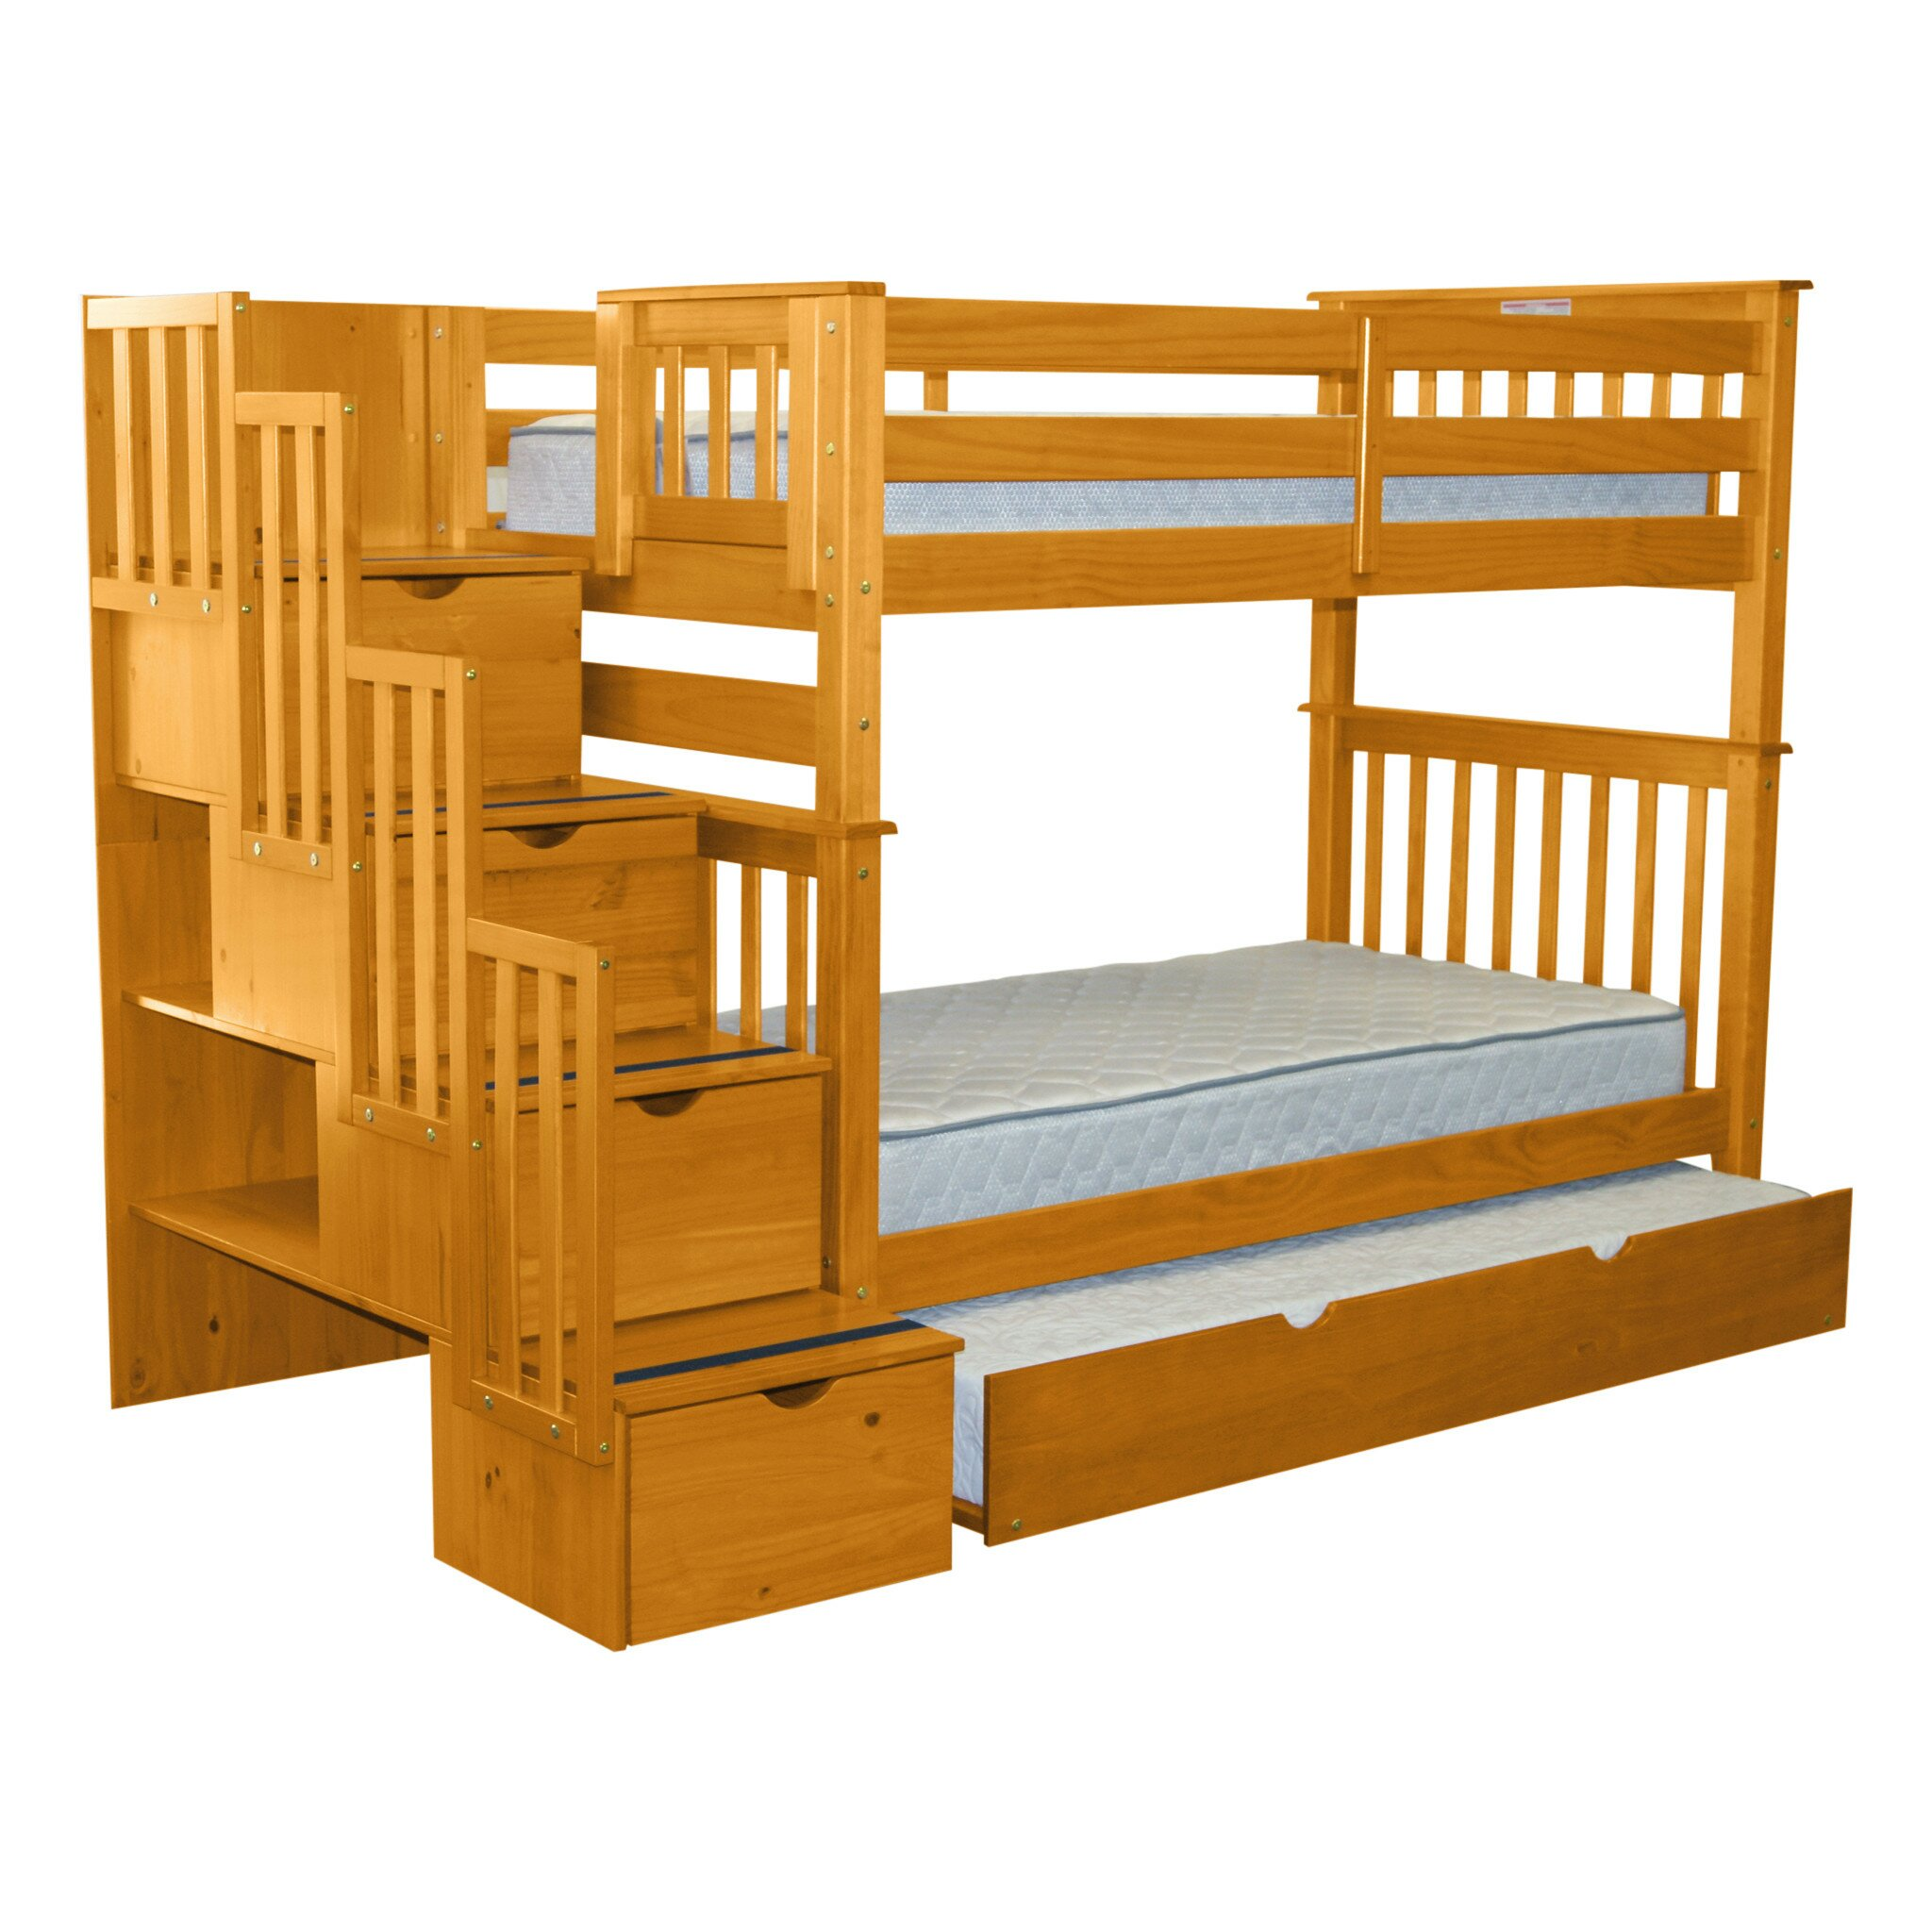 Bedz king twin bunk bed with trundle reviews wayfair for Loft bed with trundle